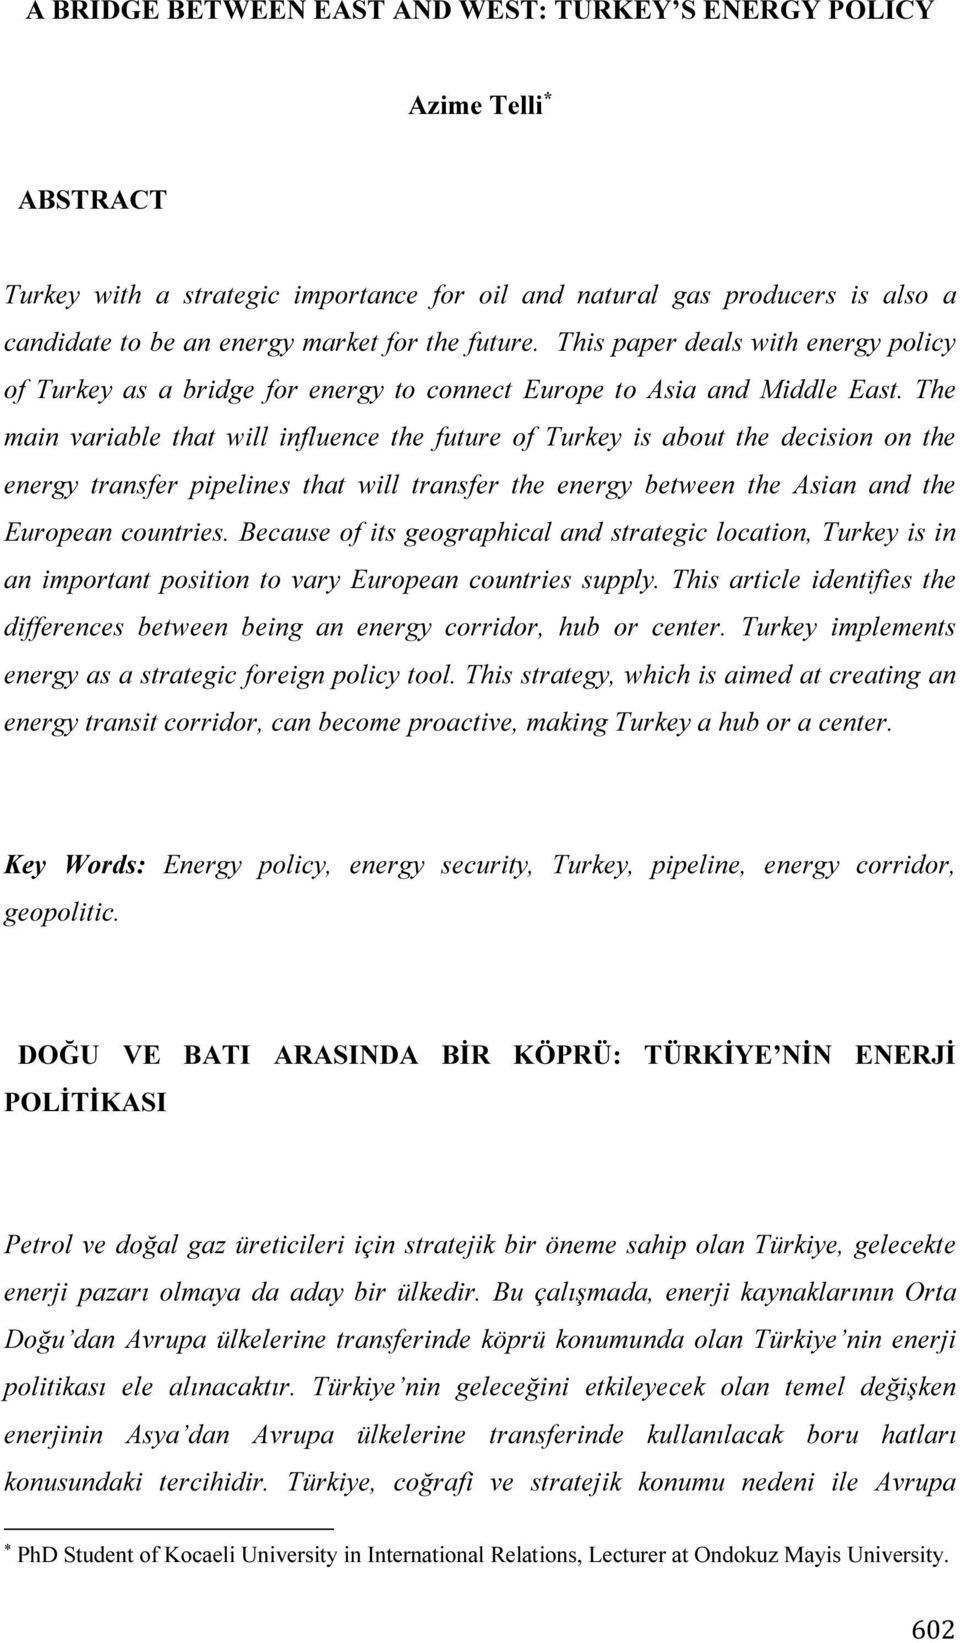 The main variable that will influence the future of Turkey is about the decision on the energy transfer pipelines that will transfer the energy between the Asian and the European countries.